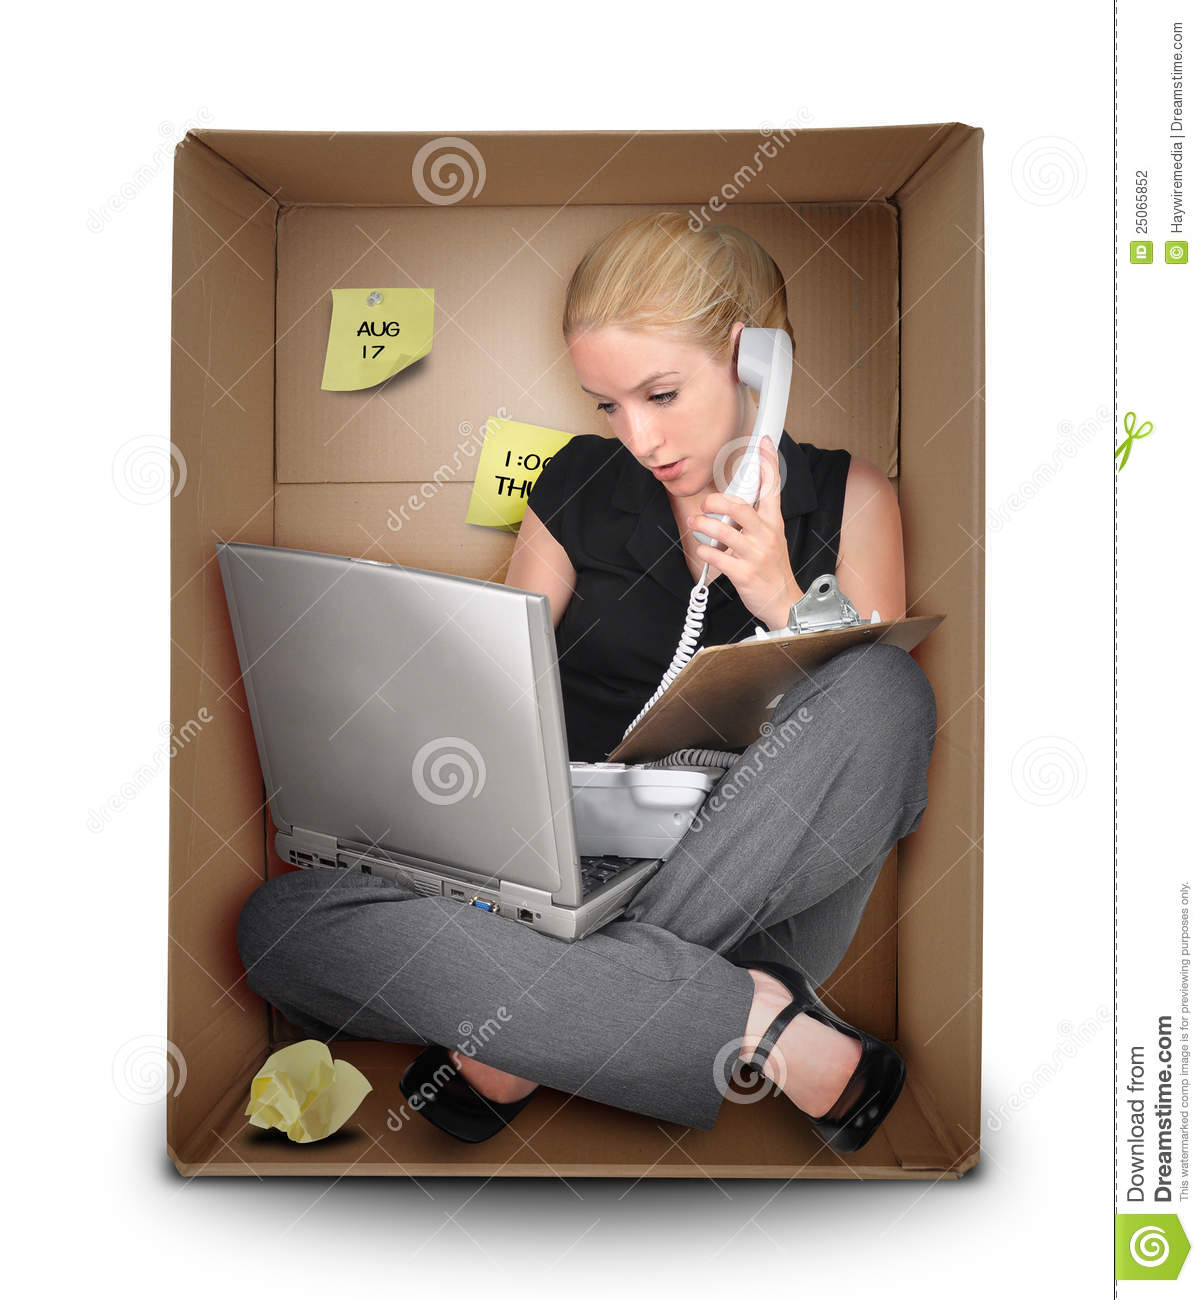 small-business-woman-office-box-25065852.jpg